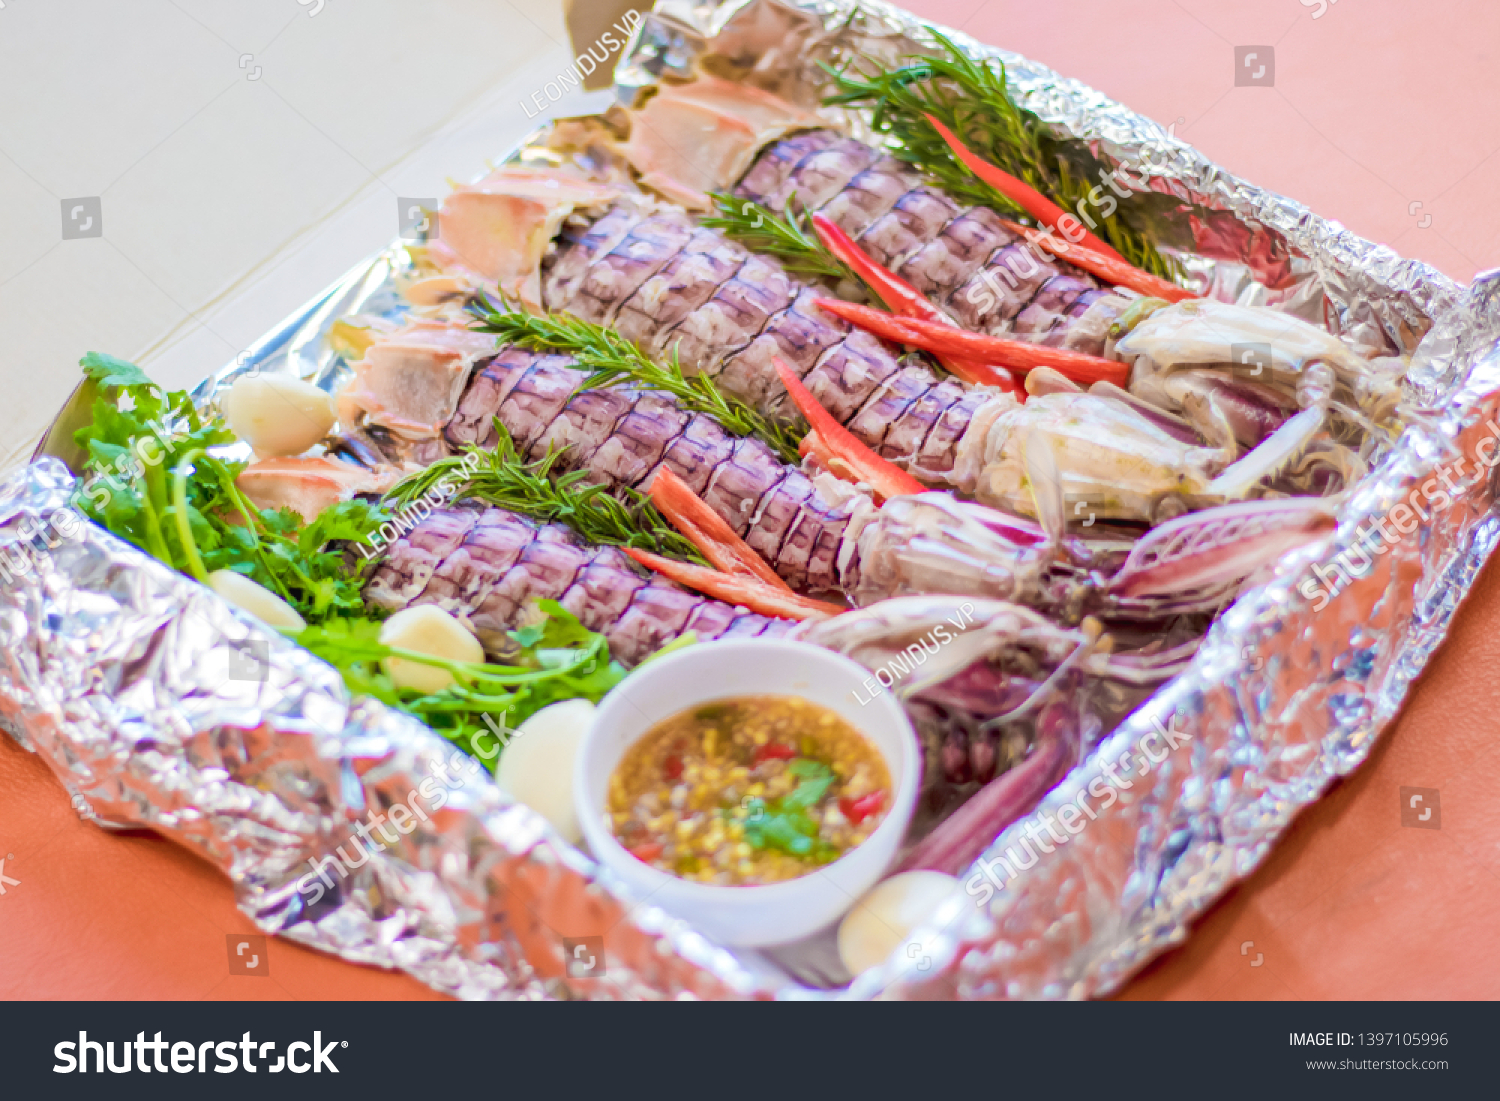 Crayfish Seafood Delivery Box Food ...